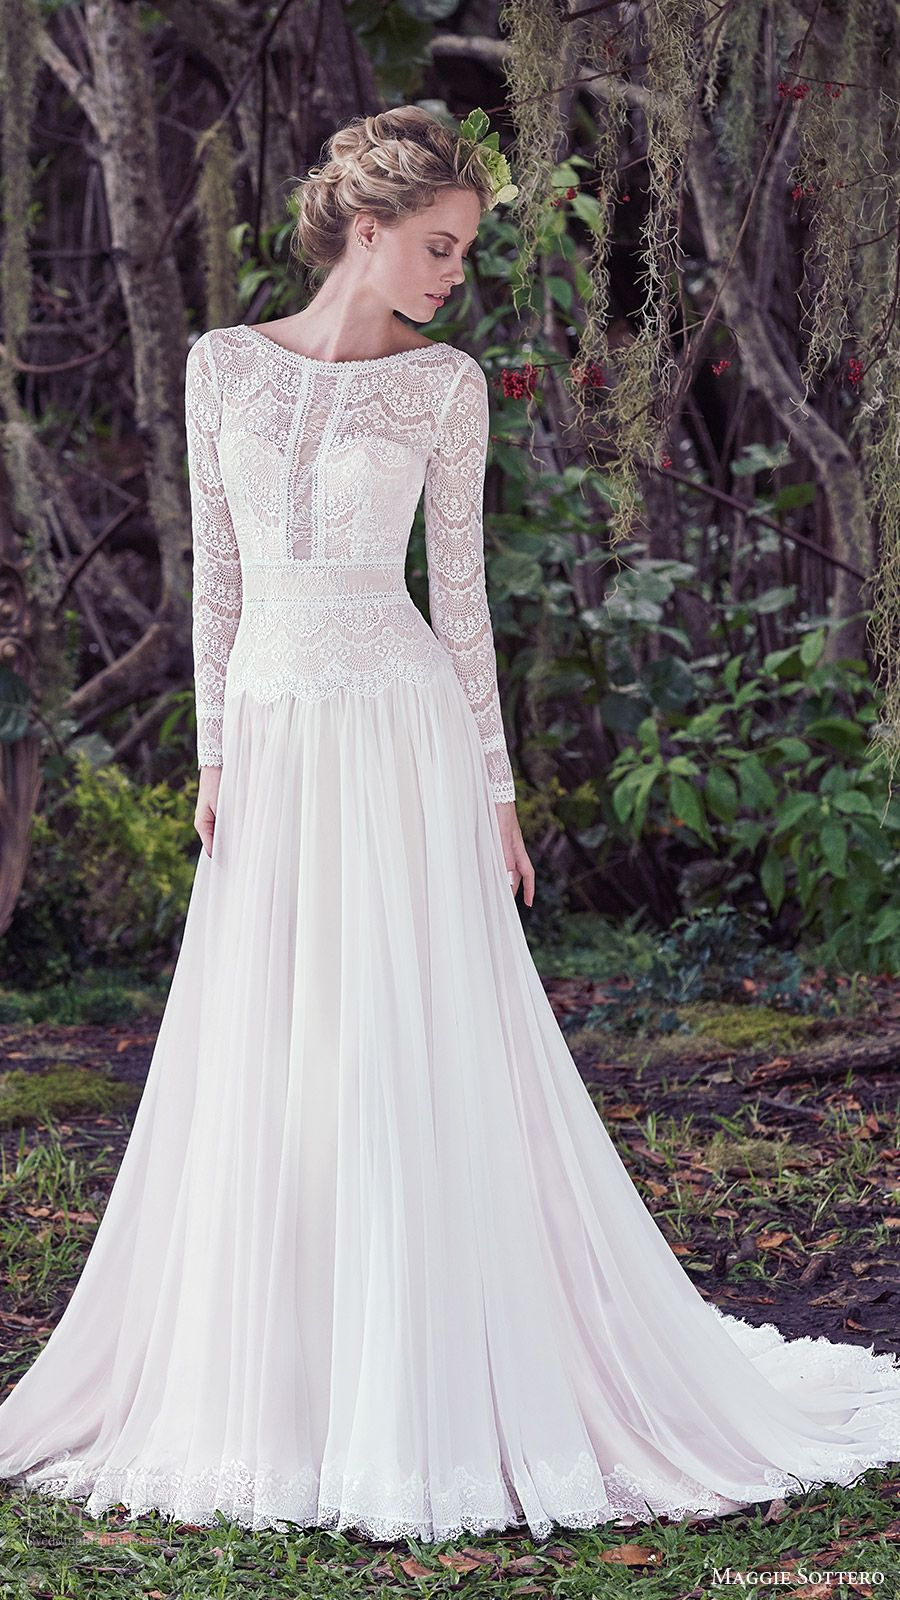 wedding dresses for fall Maggie Sottero Fall Wedding Dresses Lisette Bridal Collection Highlights